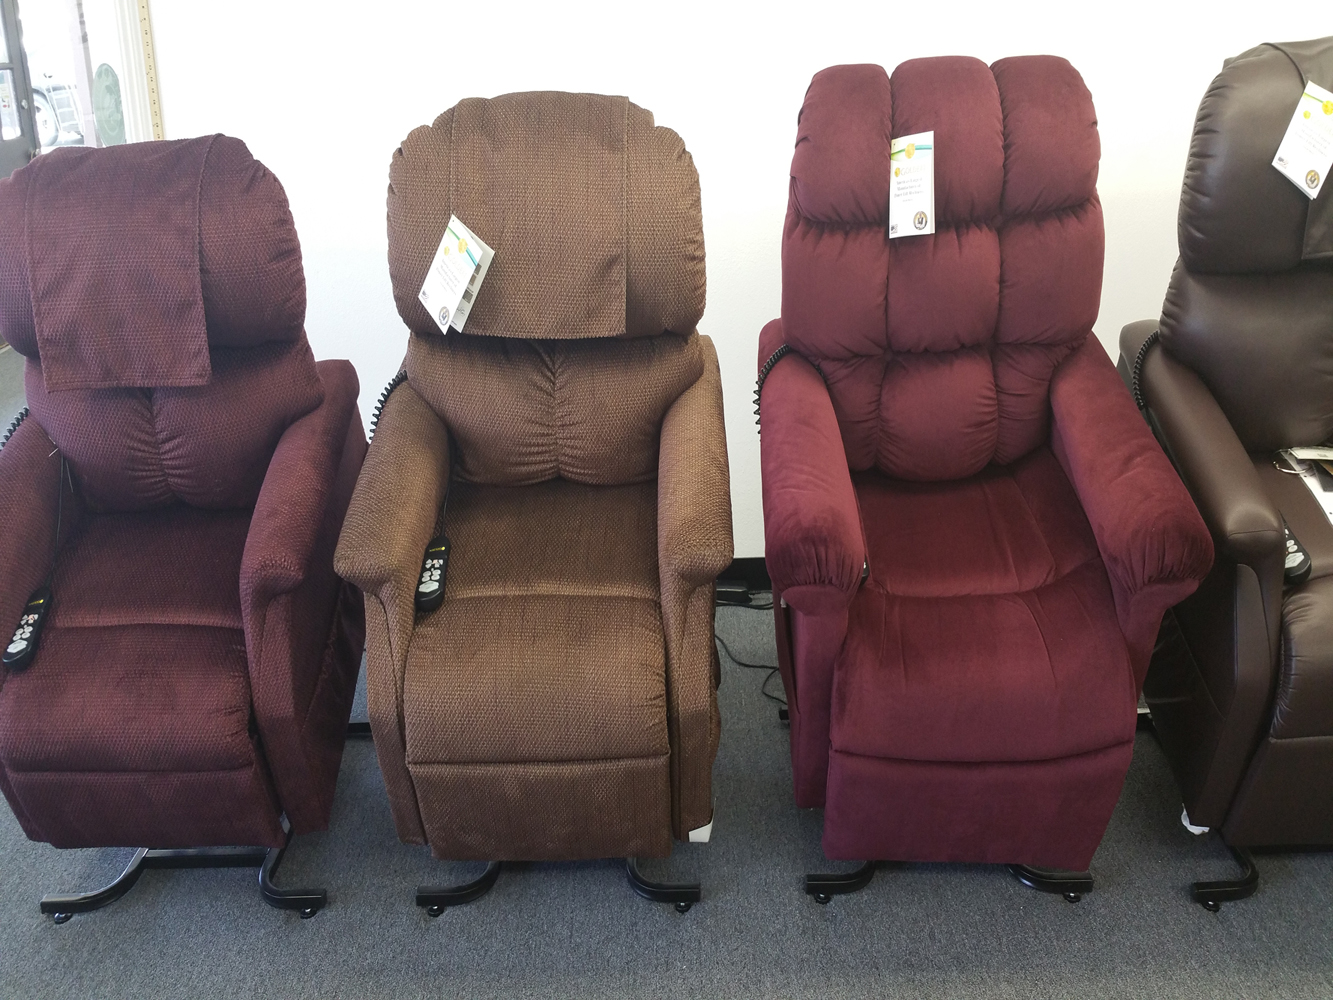 Rent Lift Chair seat reclining liftchair recliner are leather 2-motor infinite position zero gravity pride golden chairlifts